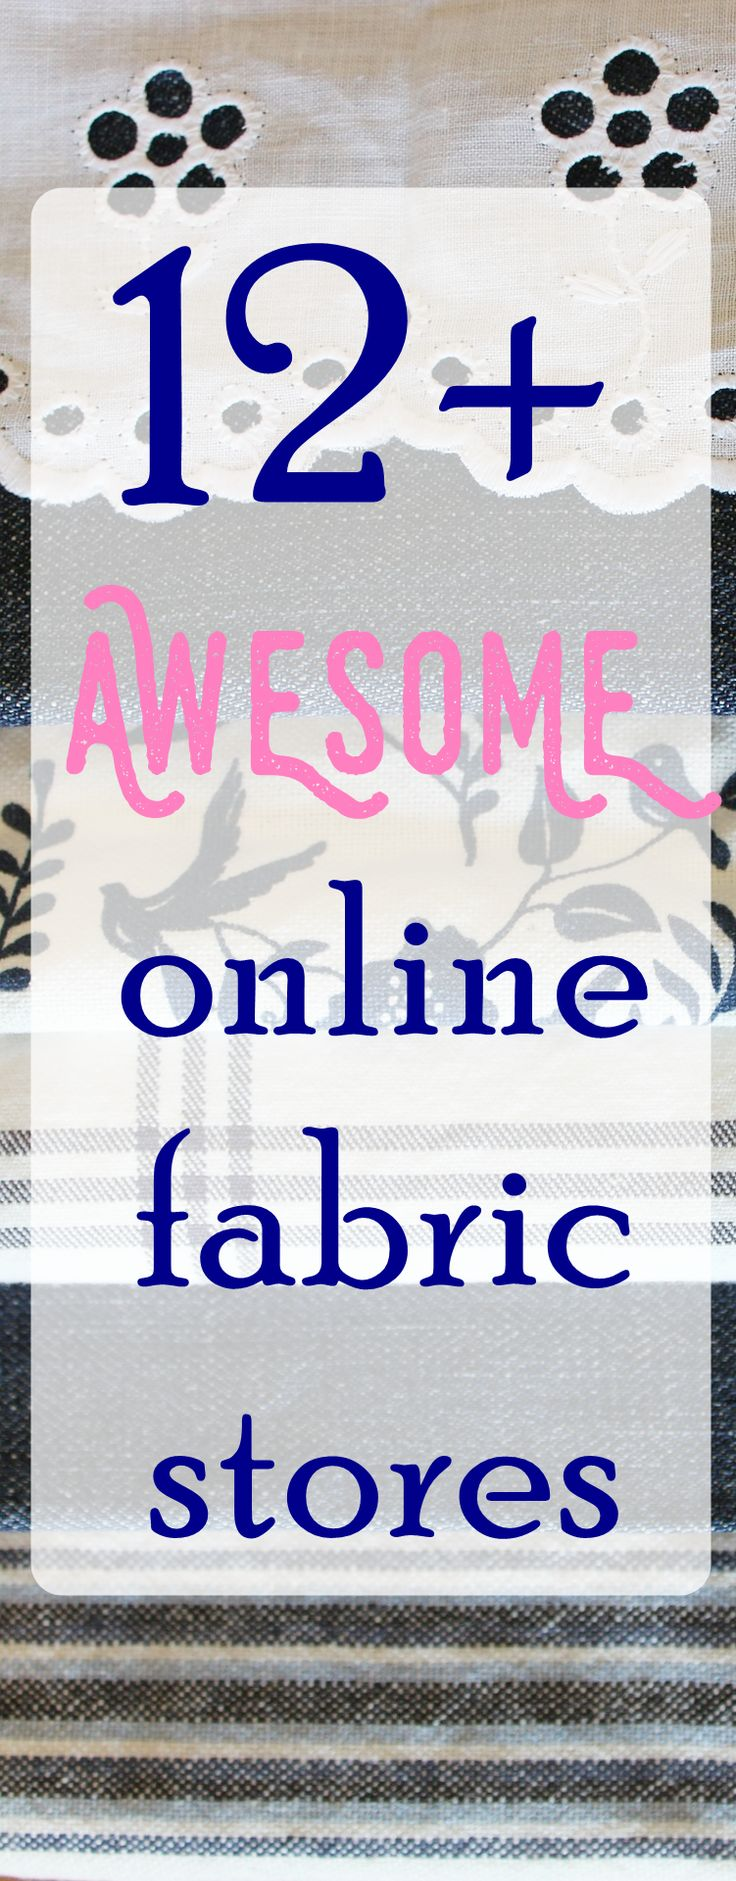 25+ best ideas about Online Fabric Stores on Pinterest ...